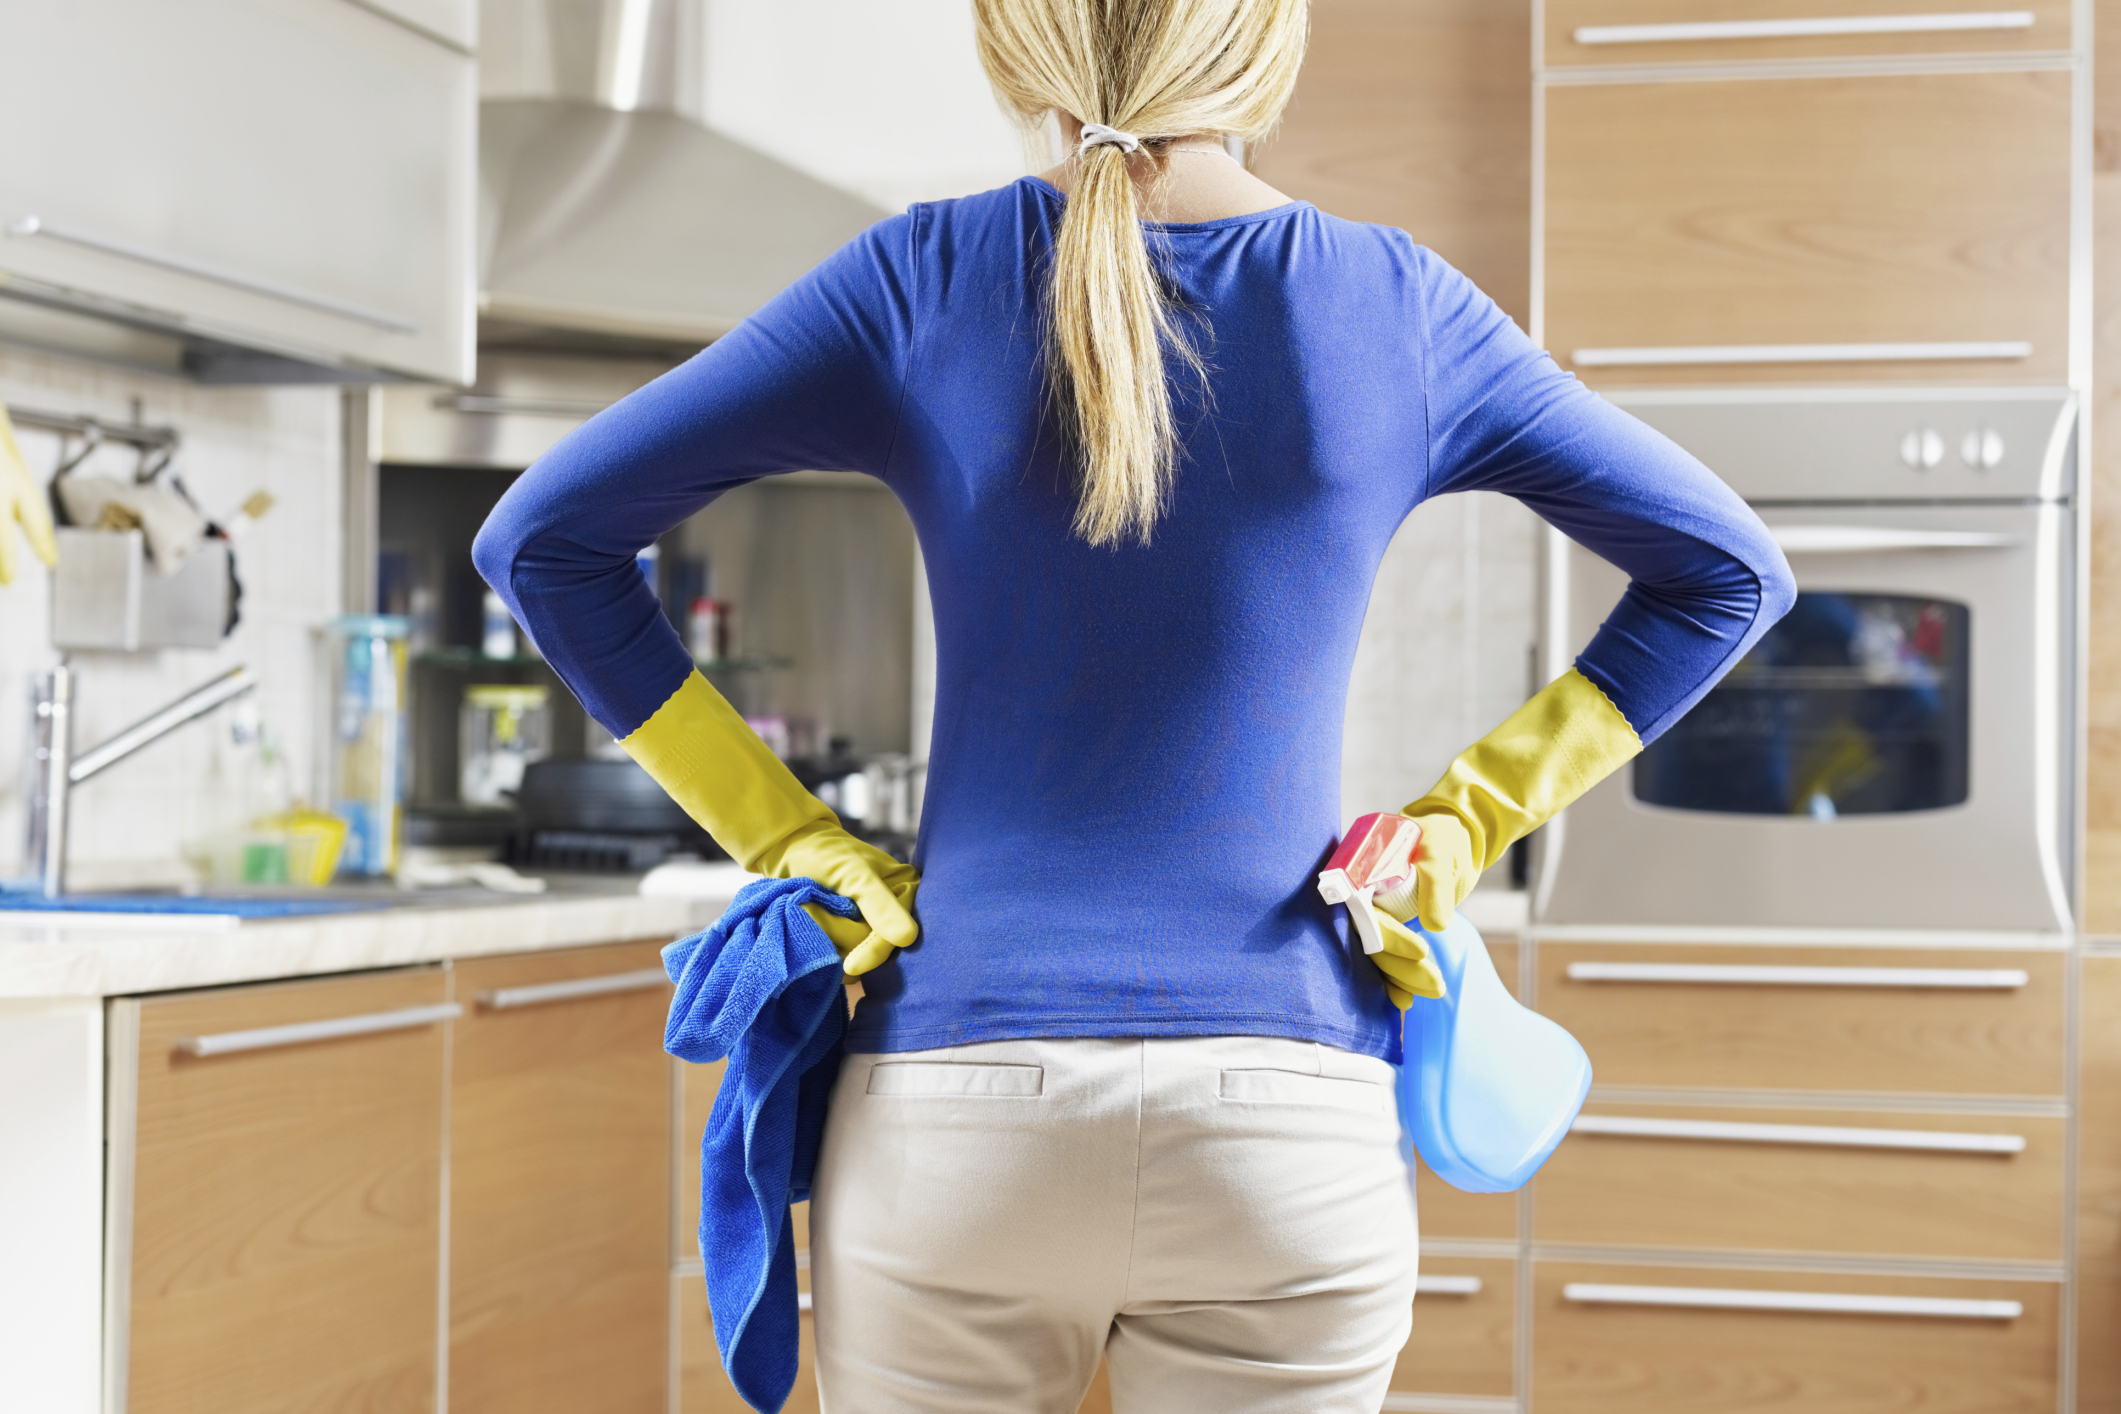 Murrieta House Cleaning Services8